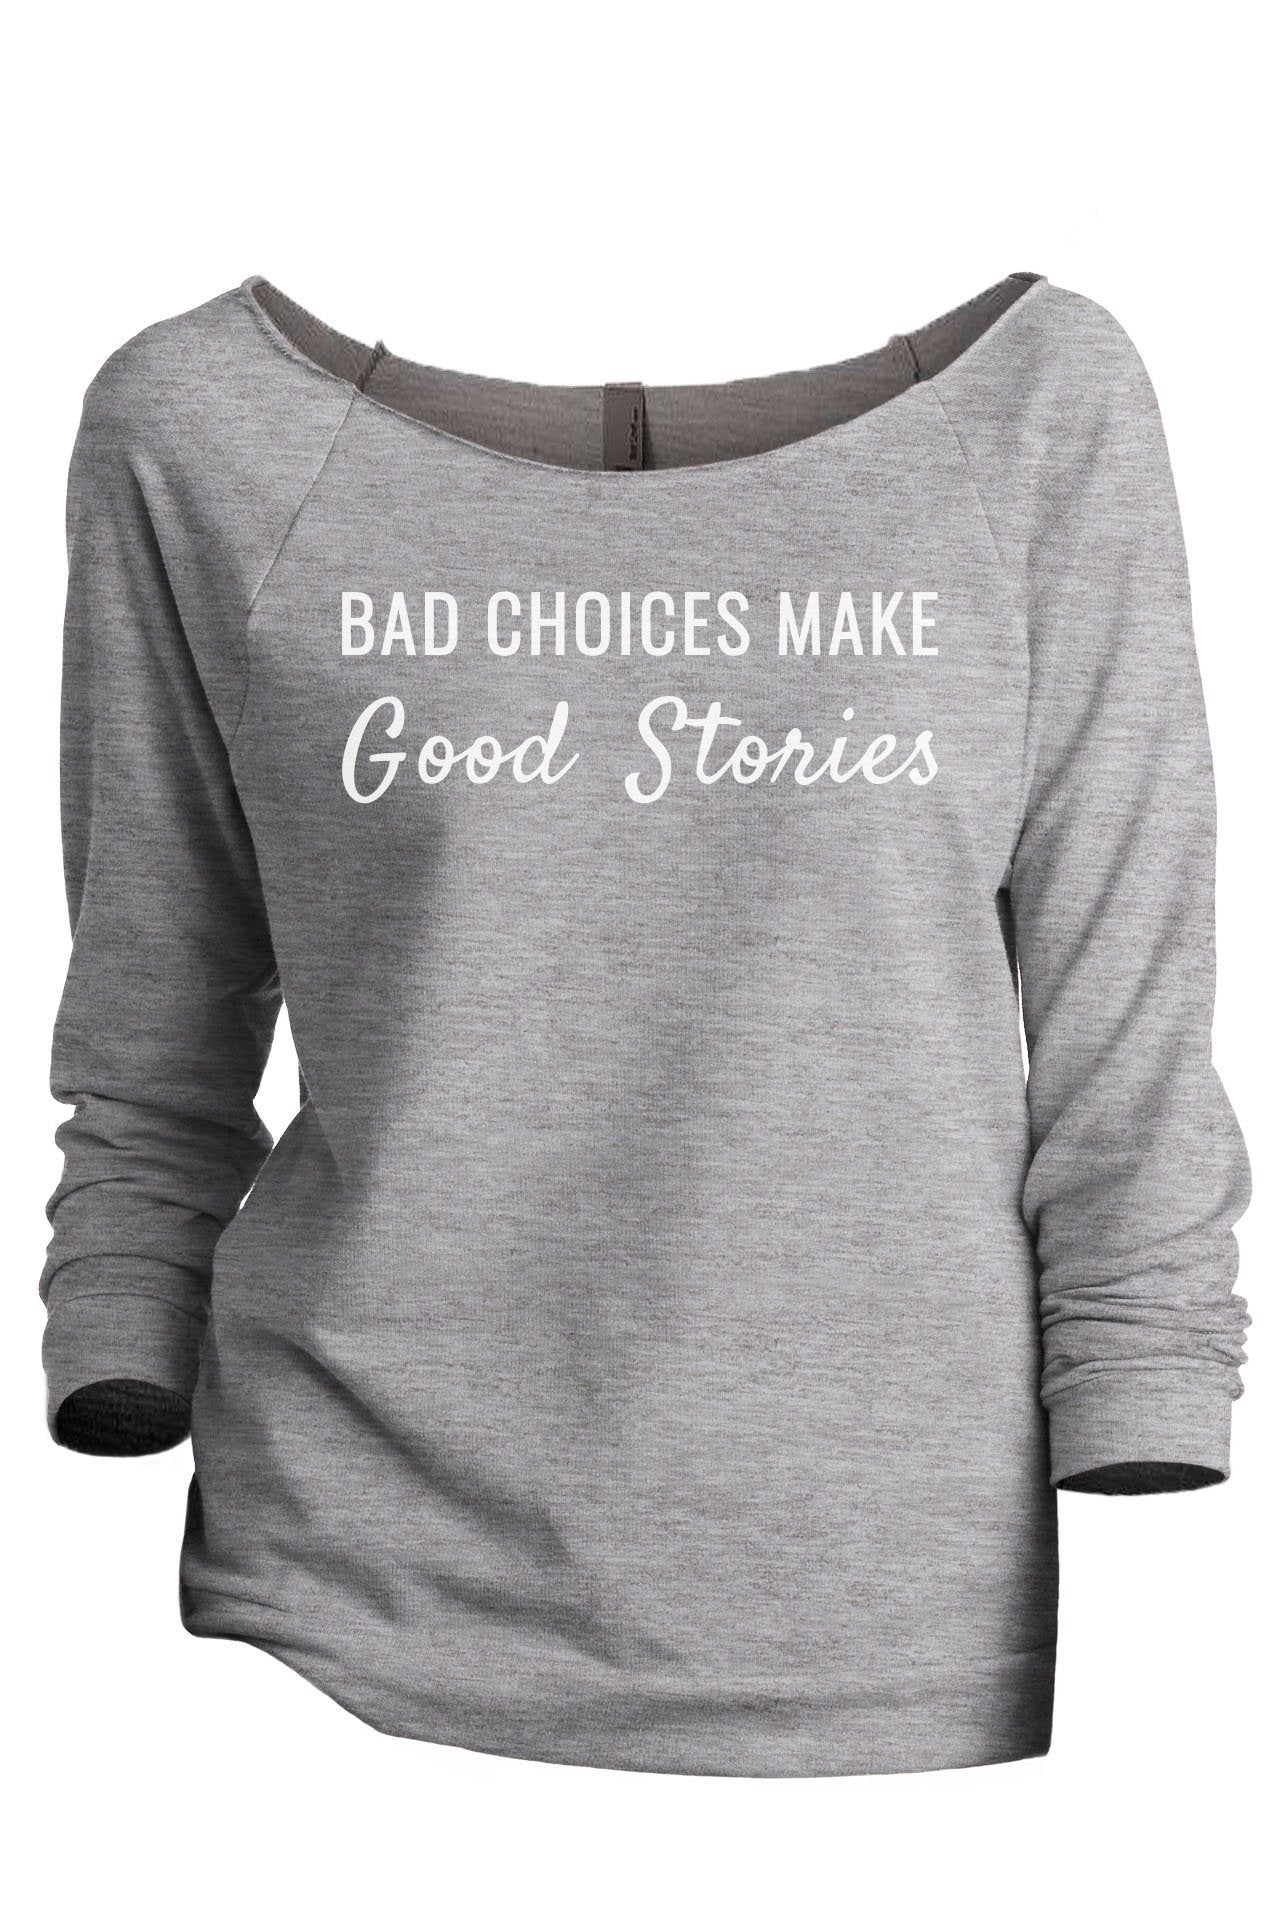 Bad Choices Make Good Stories Women's Graphic Printed Lightweight Slouchy 3/4 Sleeves Sweatshirt Sport Grey